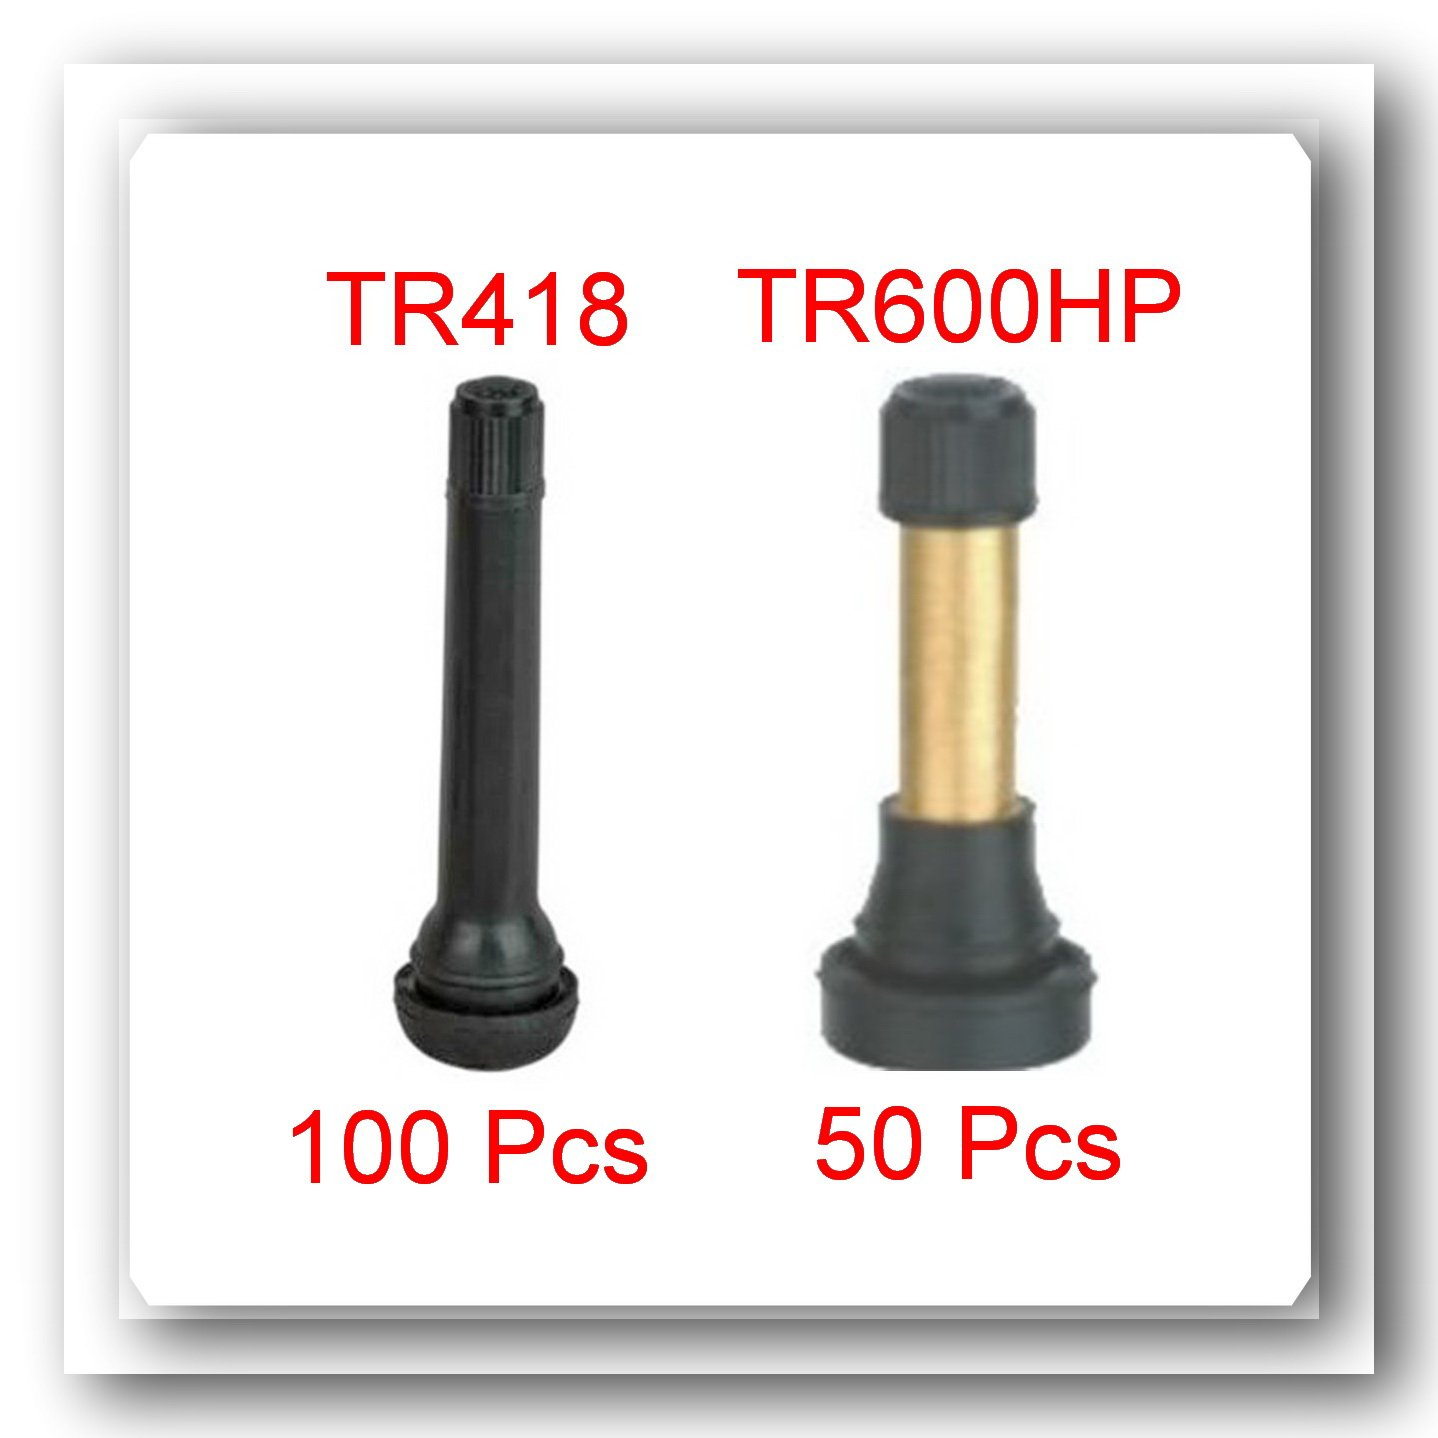 LOT 150 Snap-in Tubeless Rubber Valves (100 x TR418) (50 x TR602HP High Pressure Tire Wheel Valve Stem) by VPro